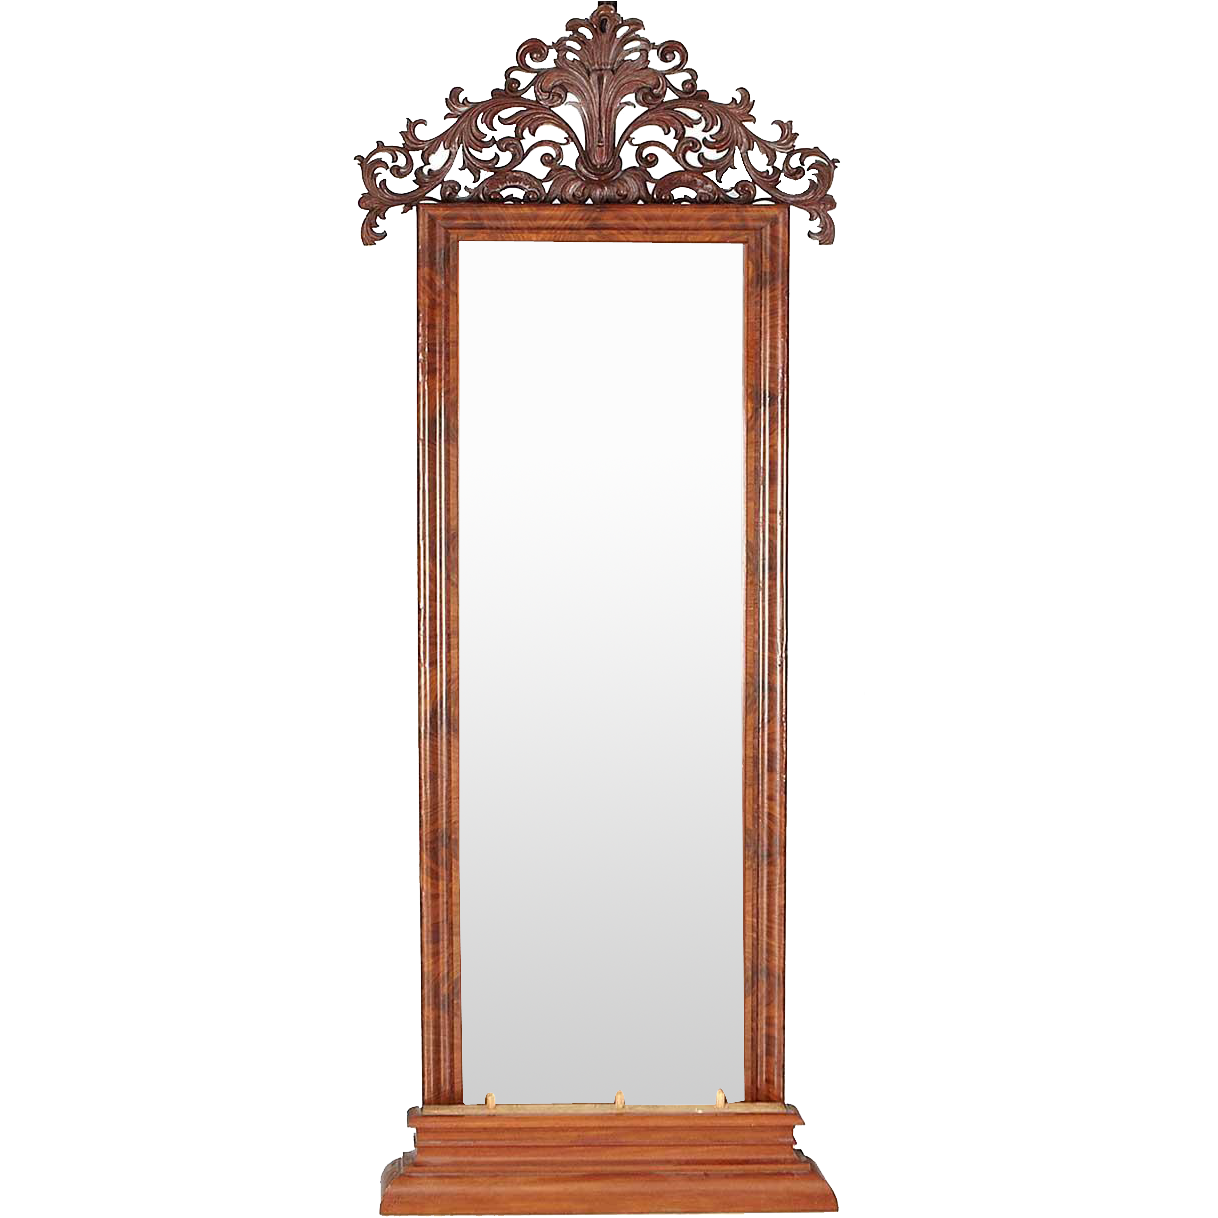 Large Swedish Flame Mahogany Veneer Pier or Floor Mirror